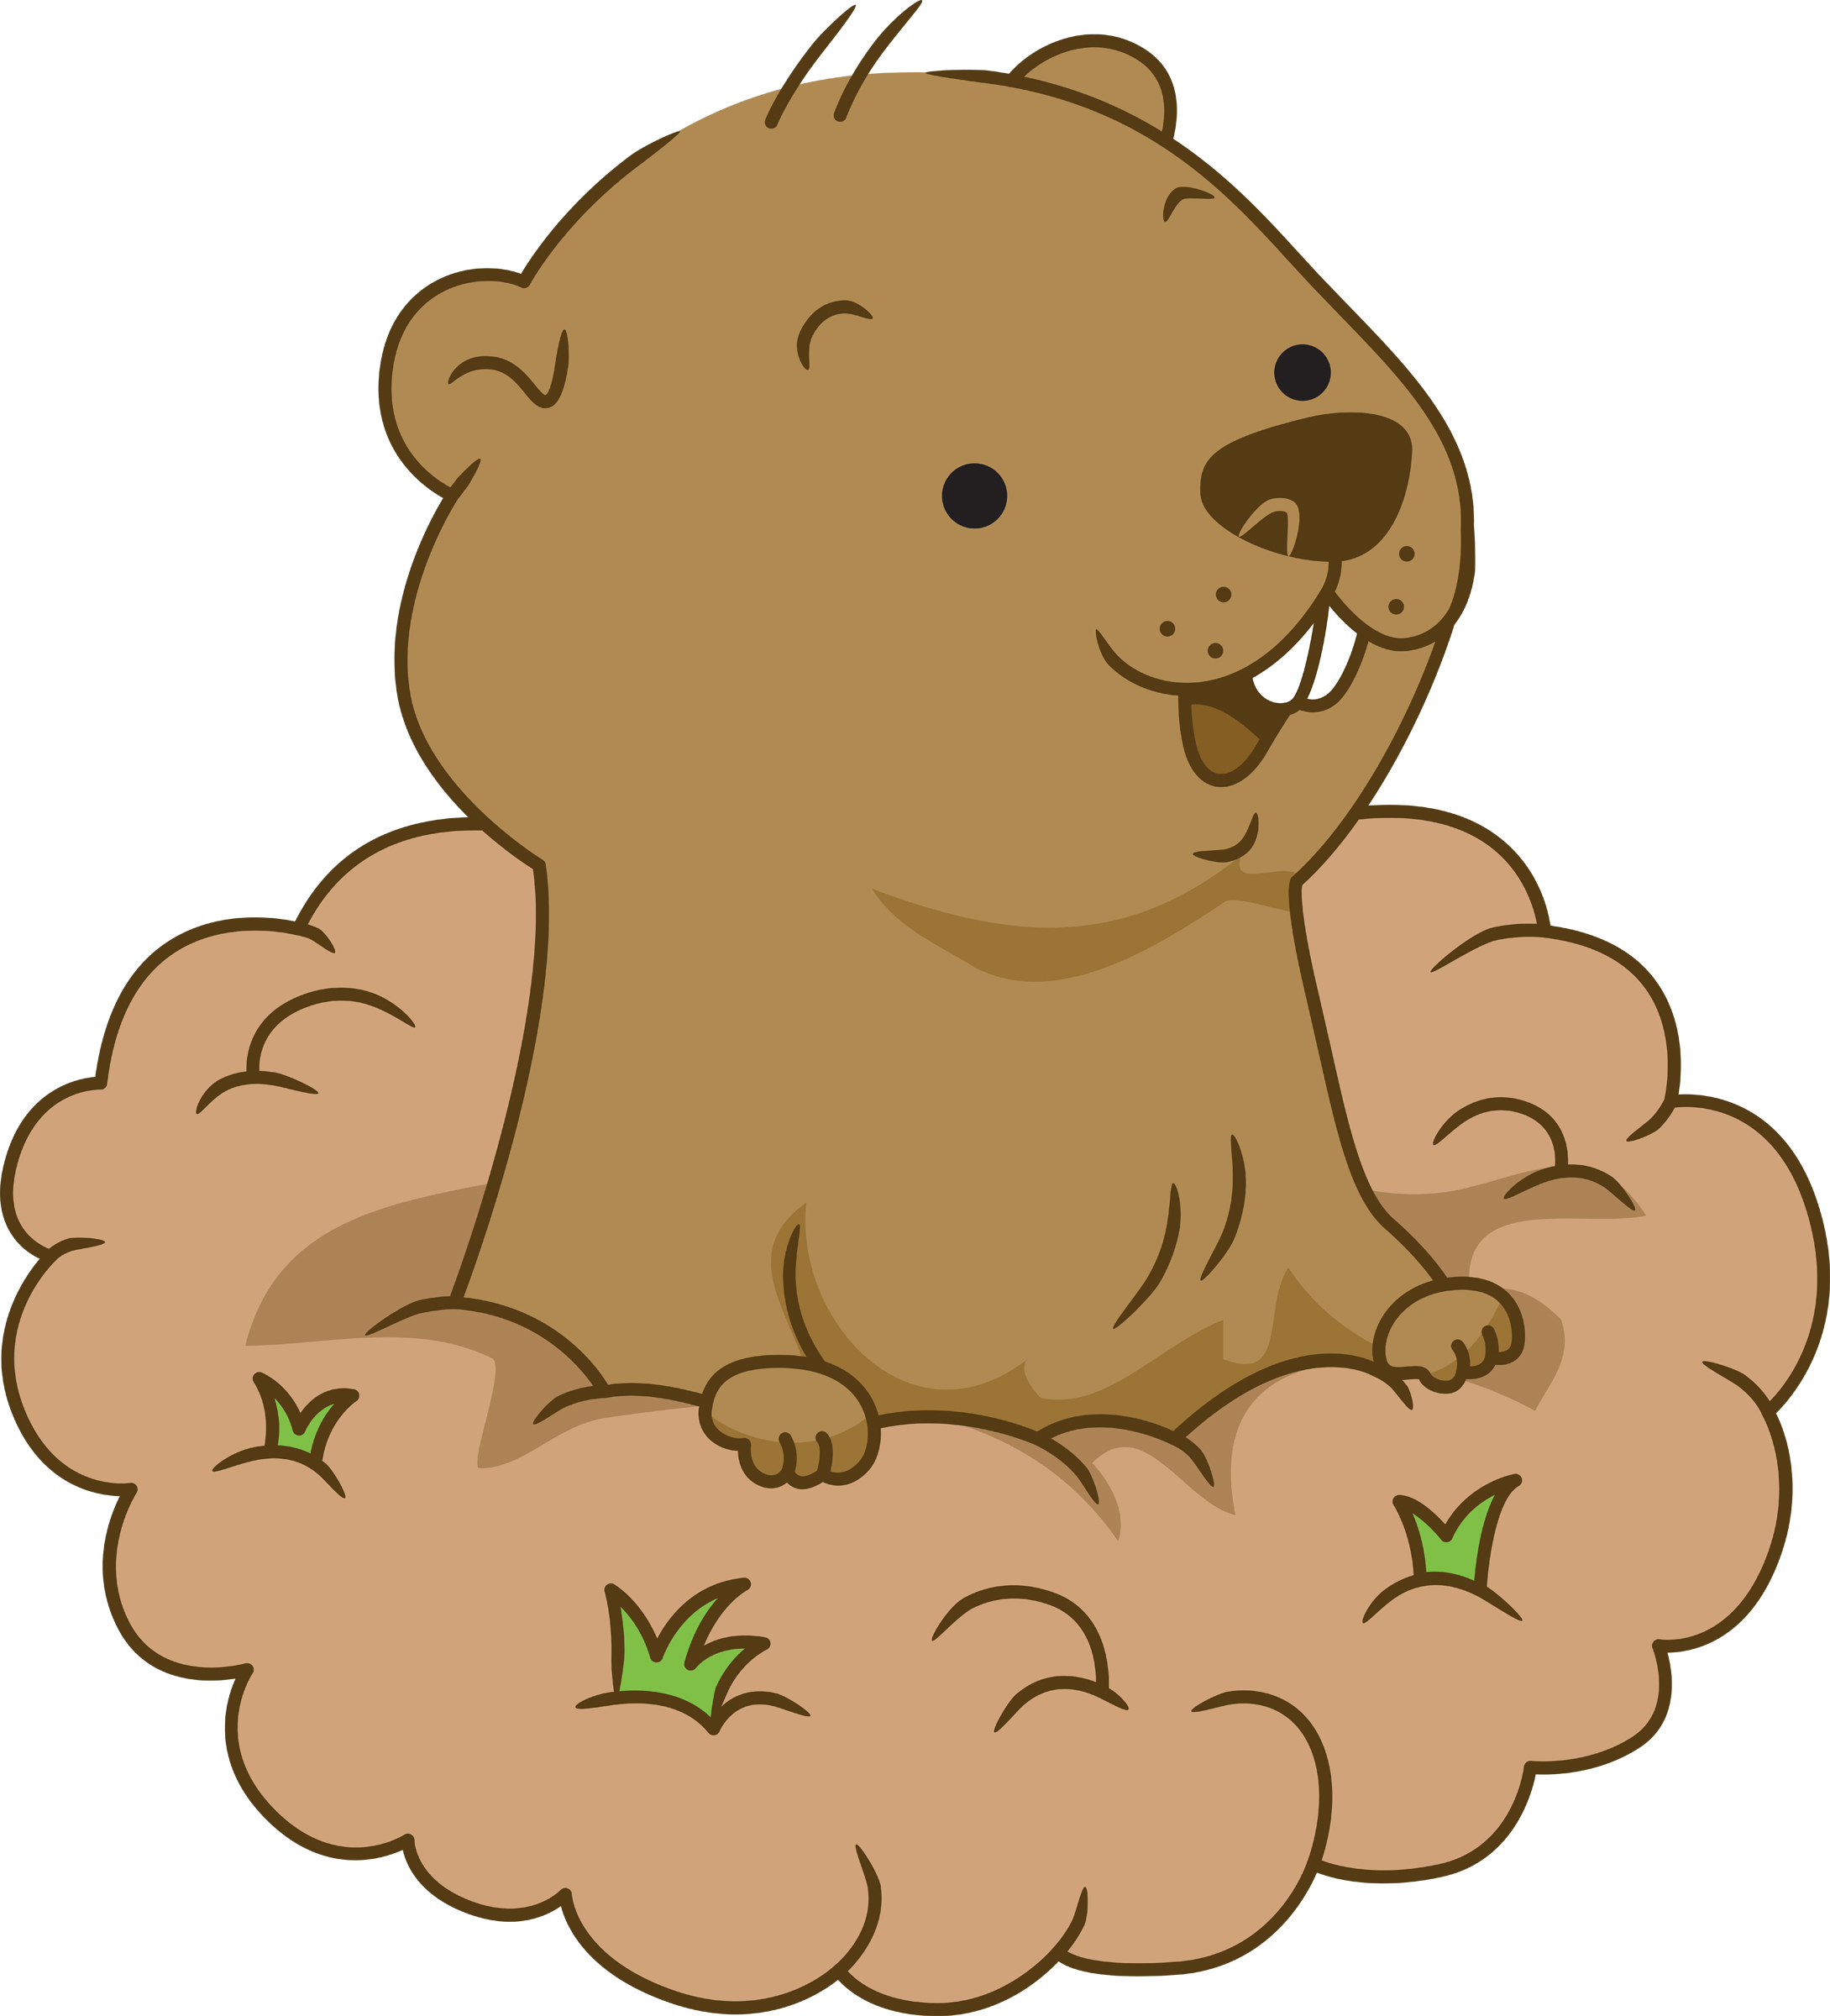 Groundhog day 5 clipart